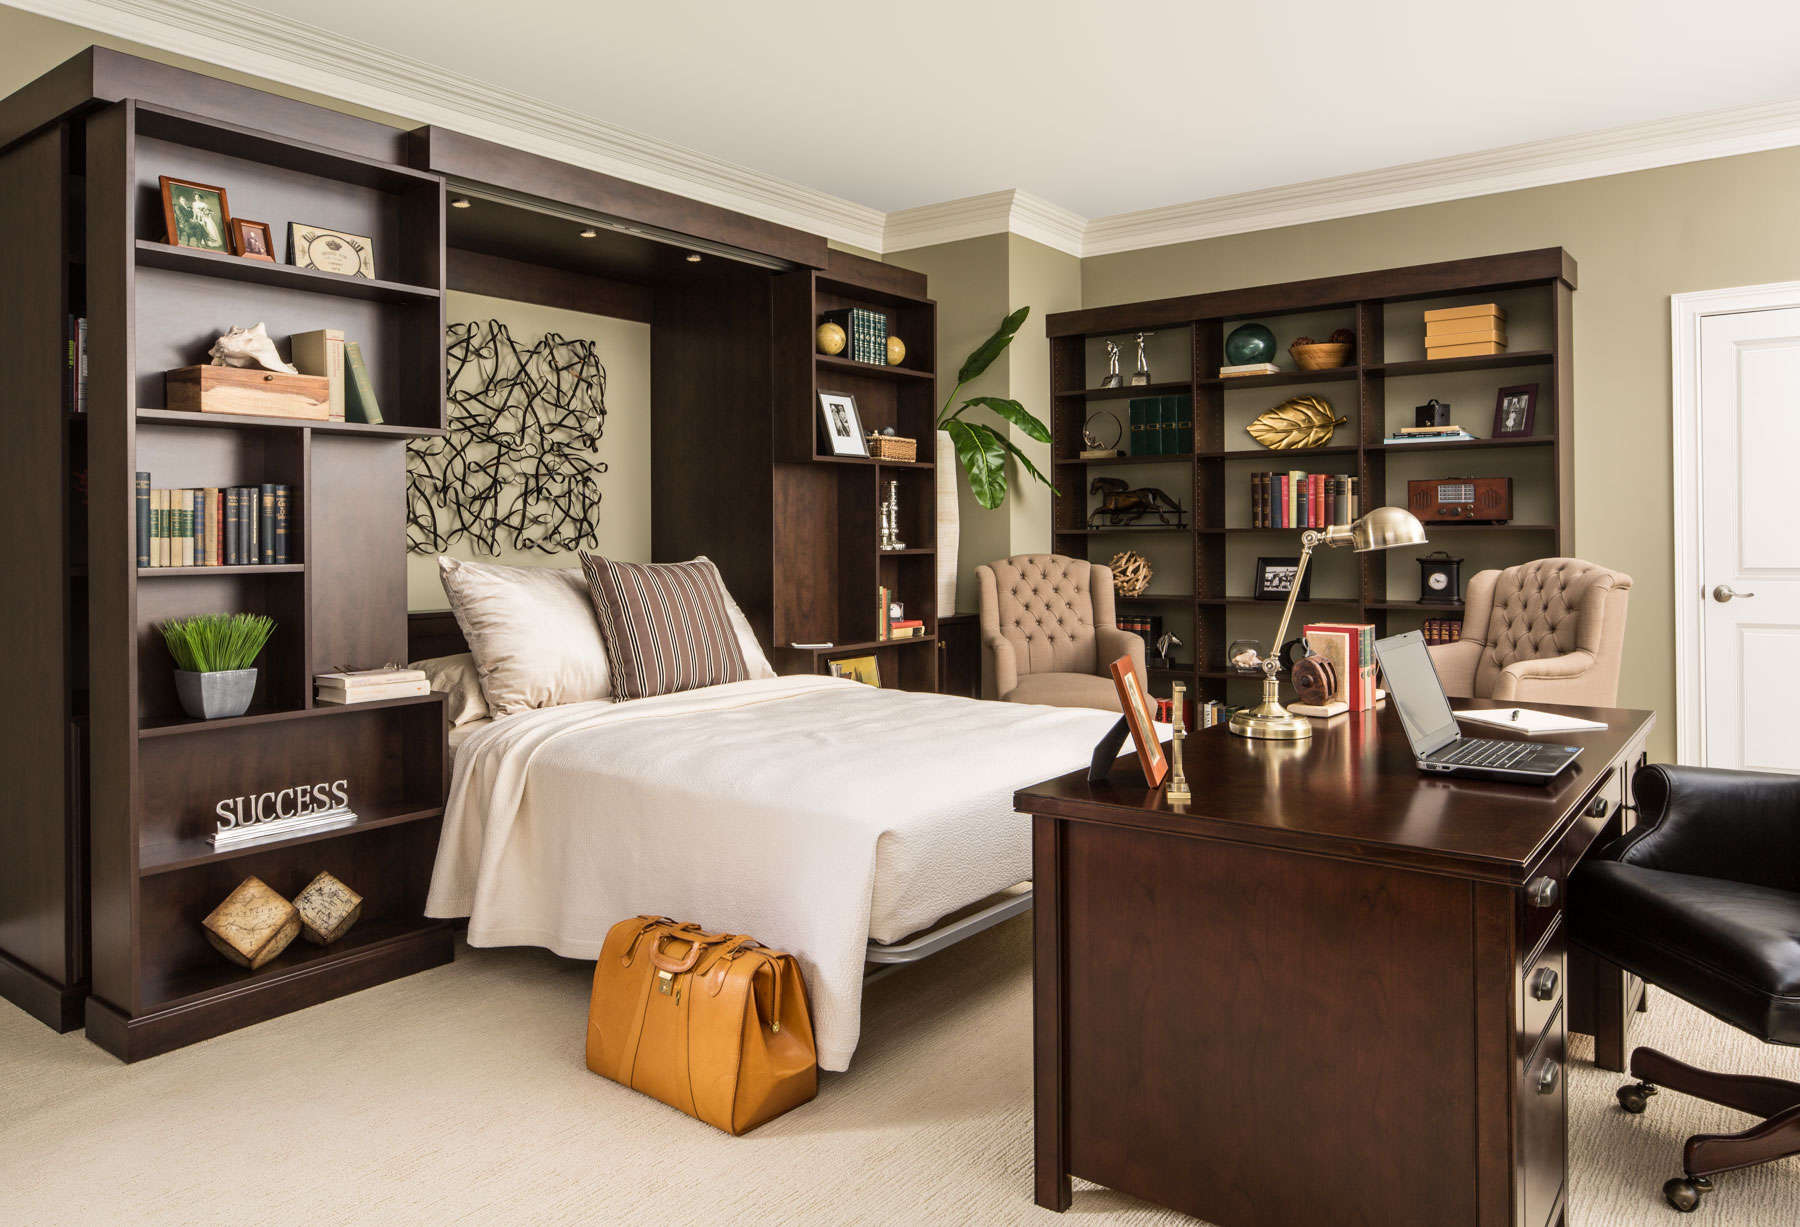 amazing space murphy bed